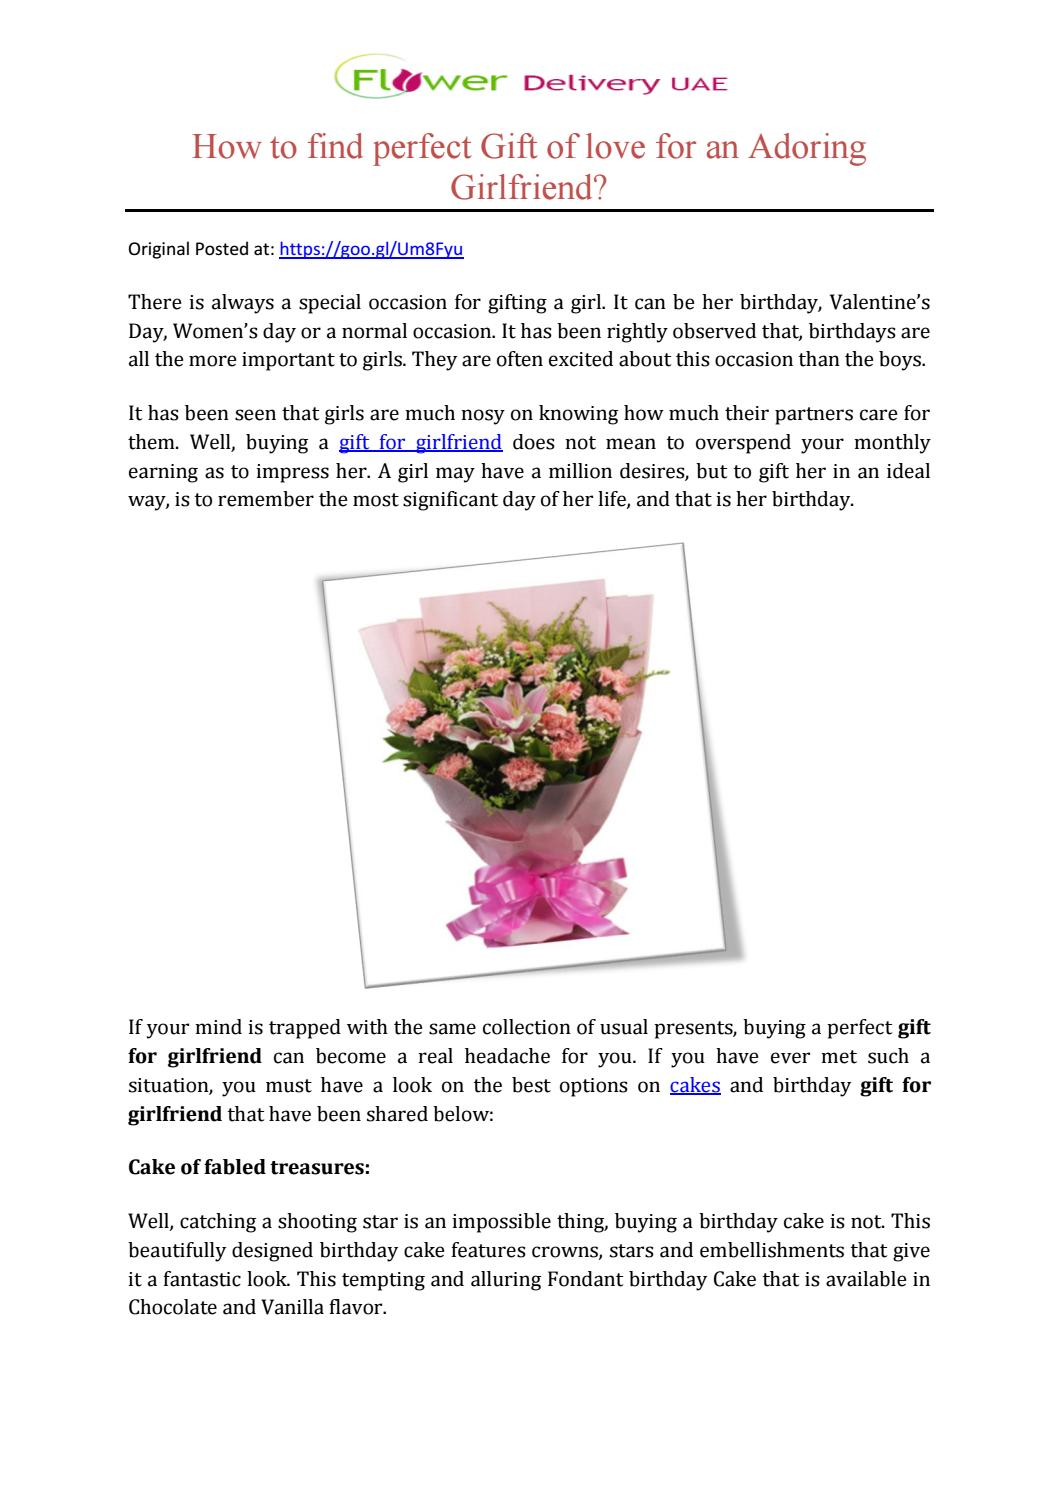 How to find perfect gift of love for an adoring girlfriend by how to find perfect gift of love for an adoring girlfriend by flower delivery uae issuu izmirmasajfo Image collections